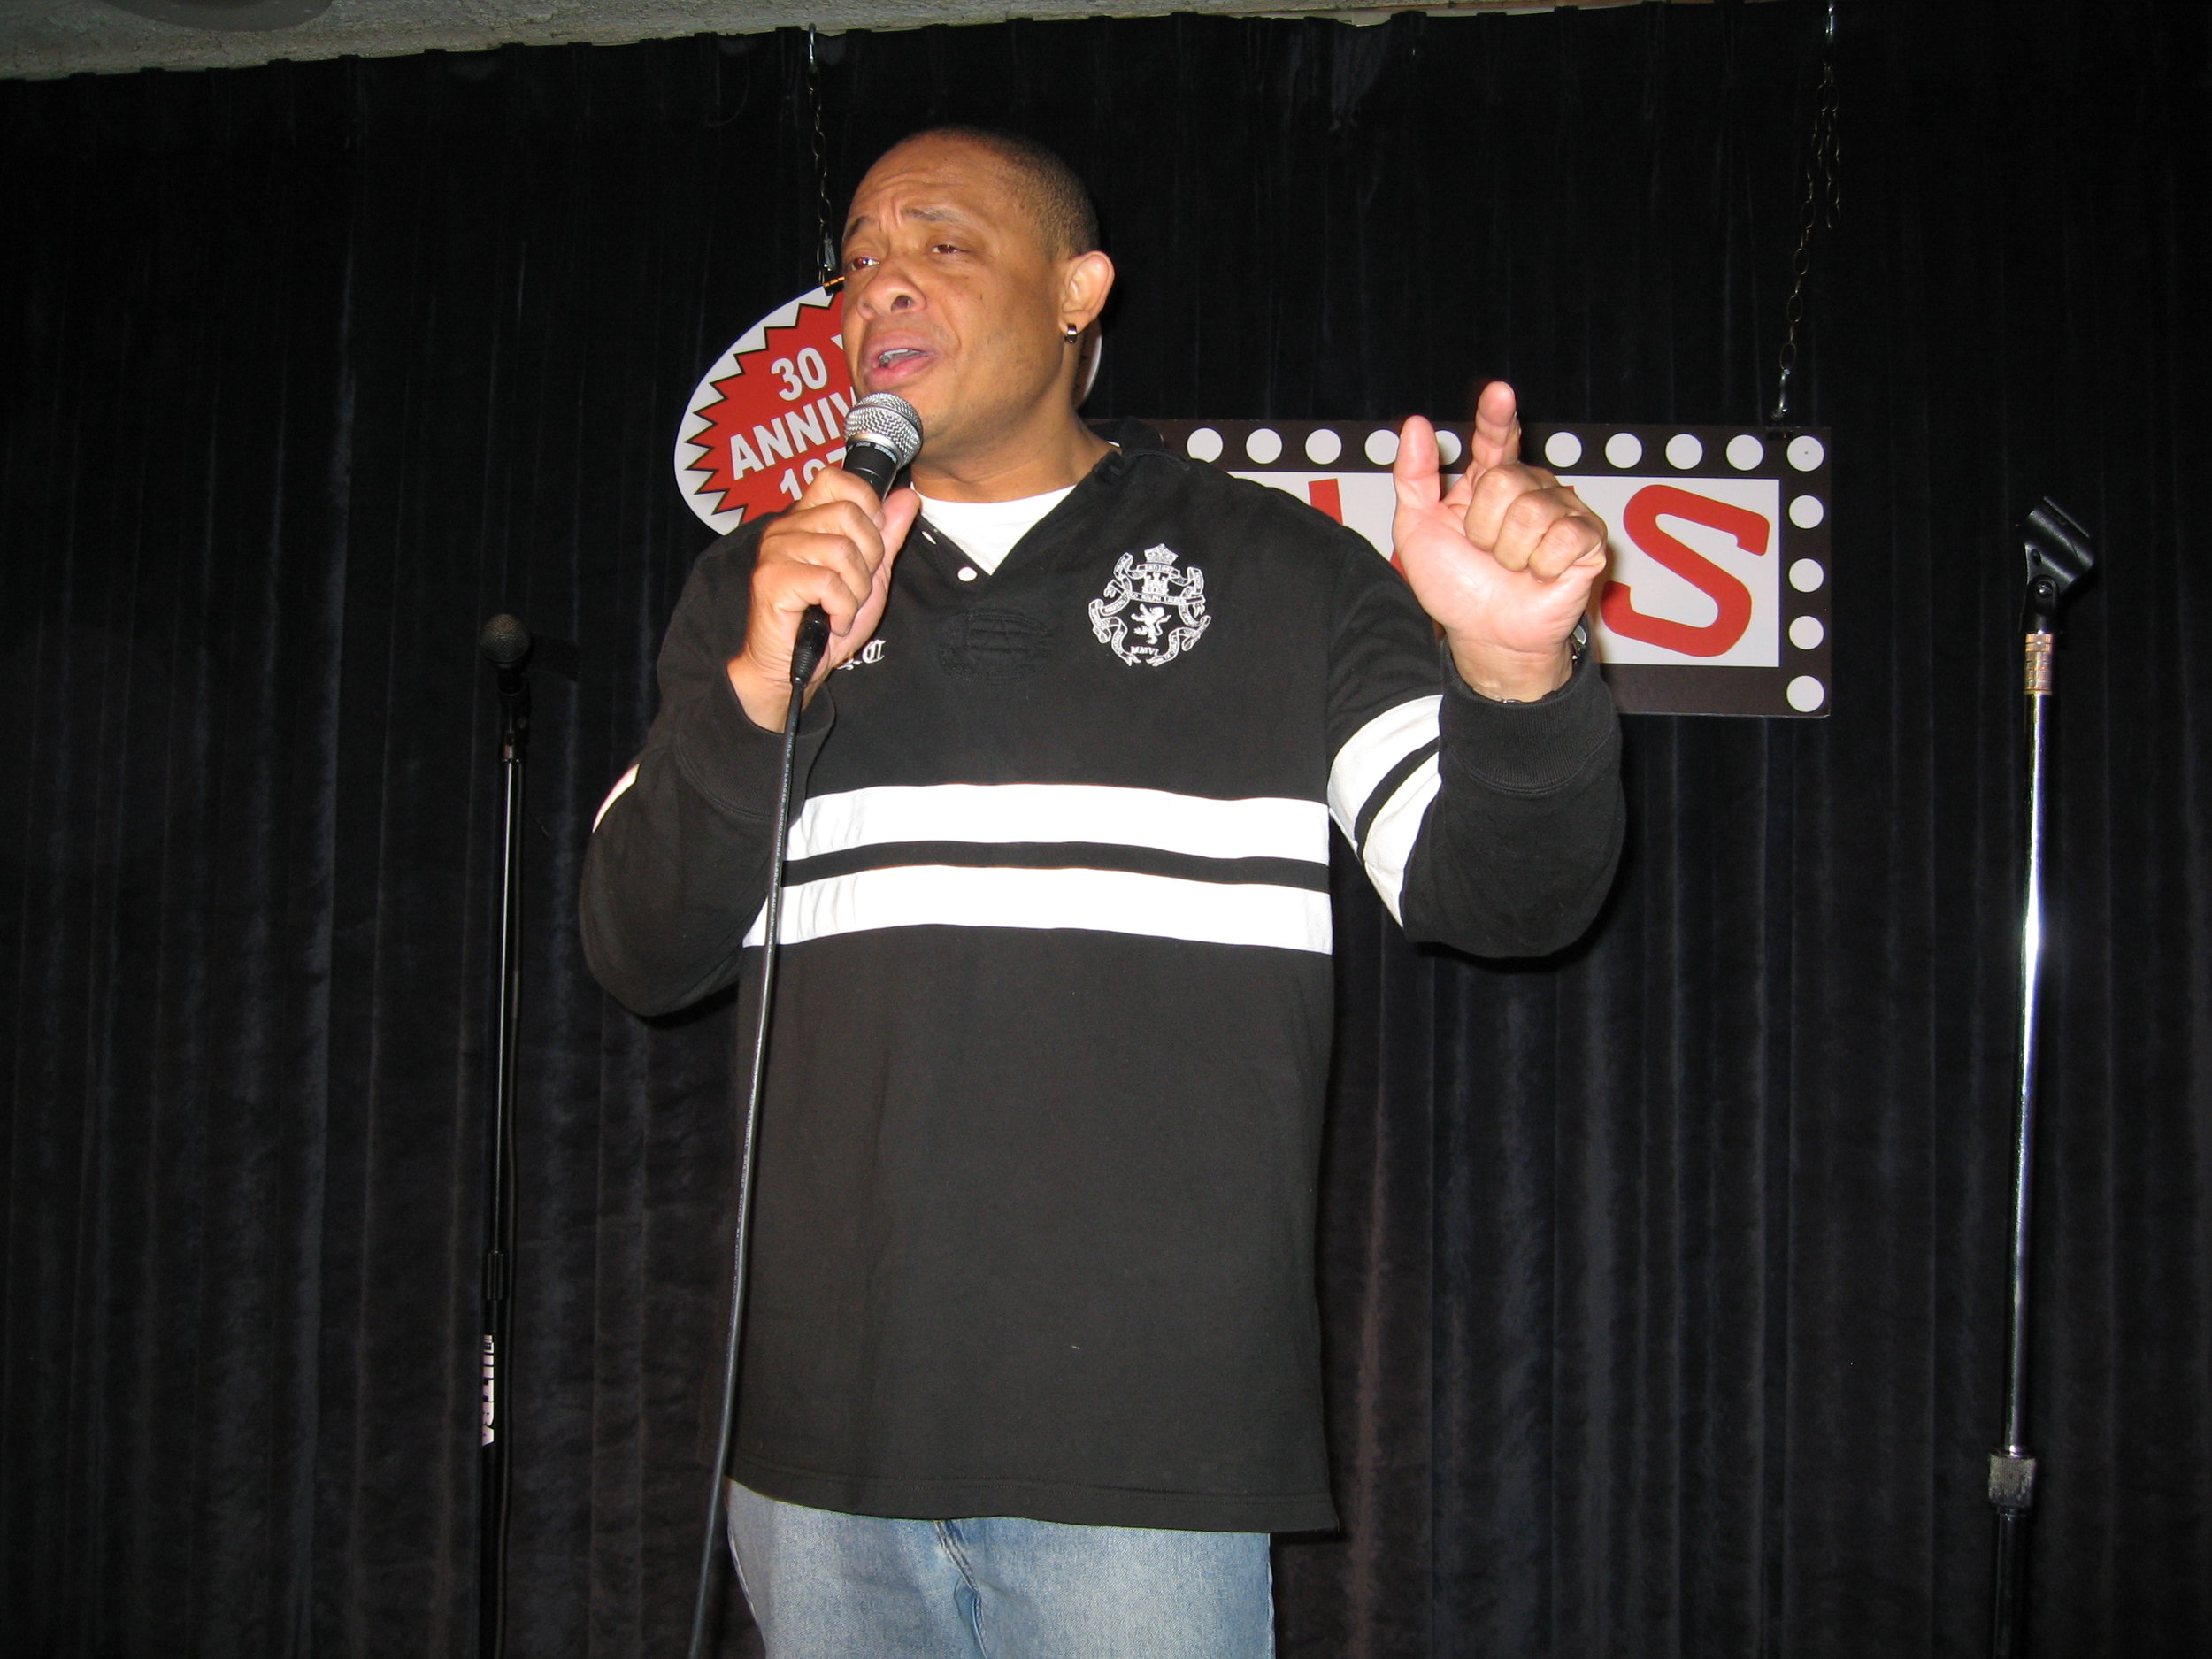 On stage at Zanies on Wells